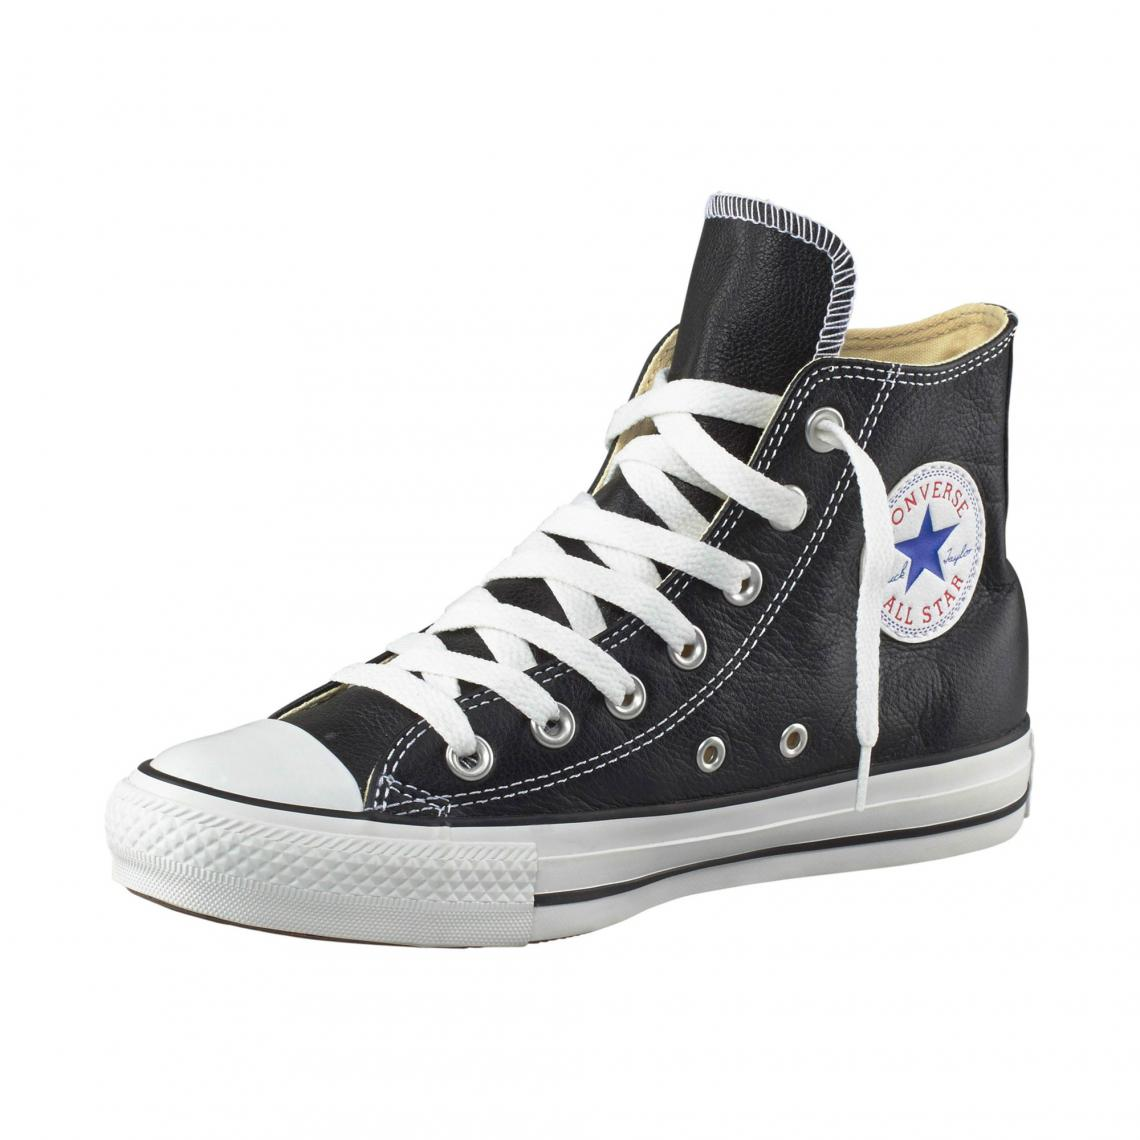 05530e6dc0abb Baskets montantes Converse All Star Basic Leather cuir homme - Noir  Converse Homme